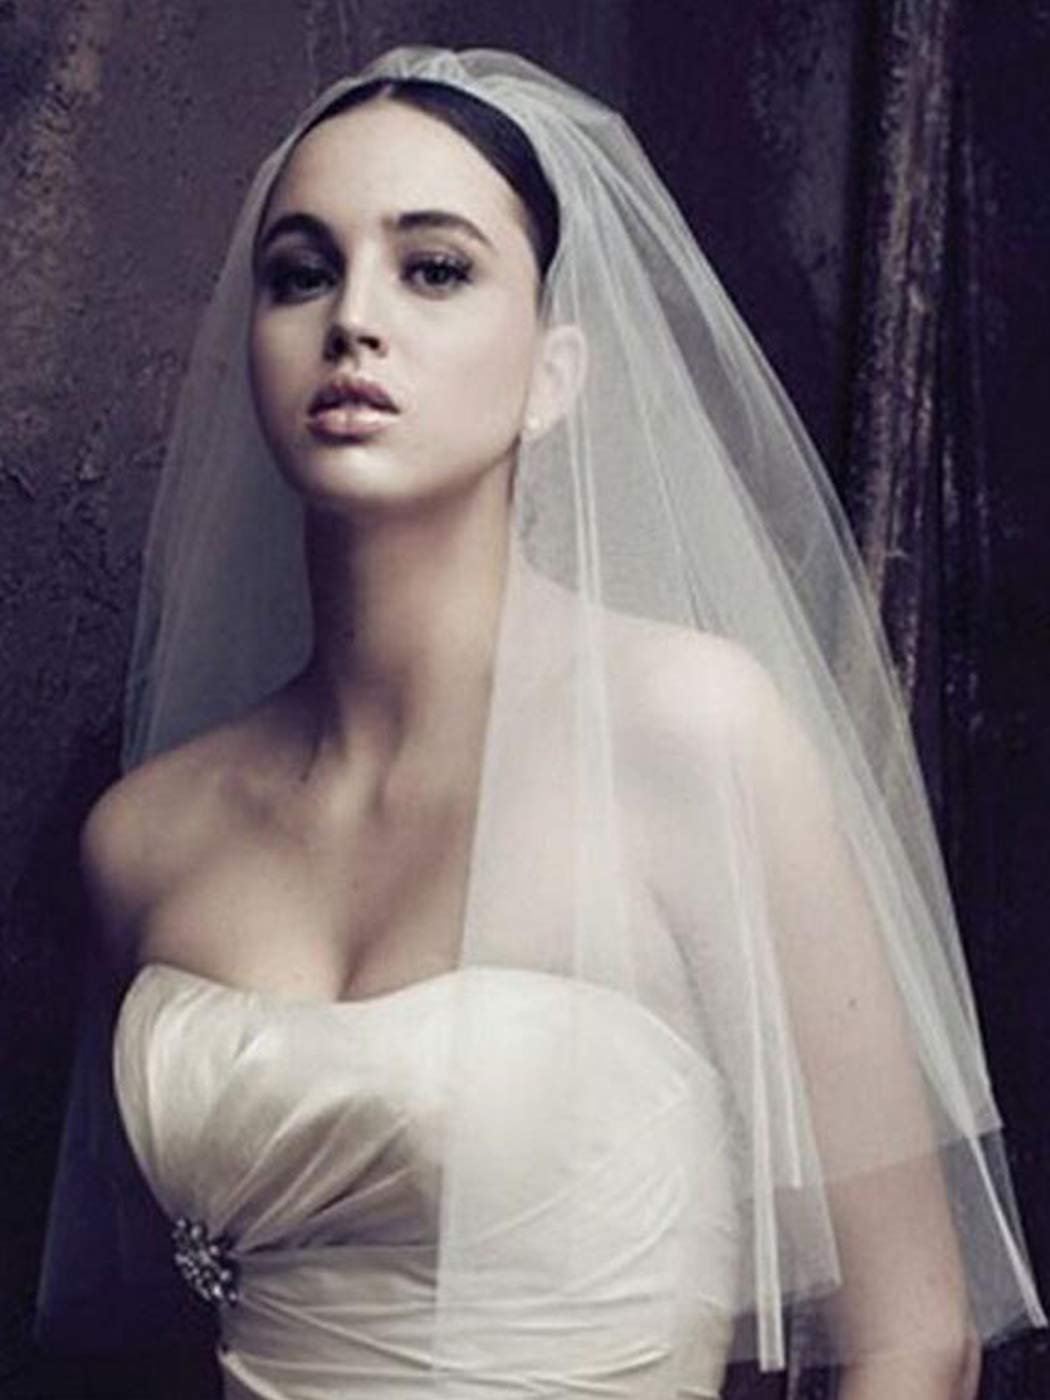 Clairy Bride Wedding Veil 2 Tier Veils Bridal Tulle Headpieces Short Hair Jewelry Veils with Comb (Ivory)